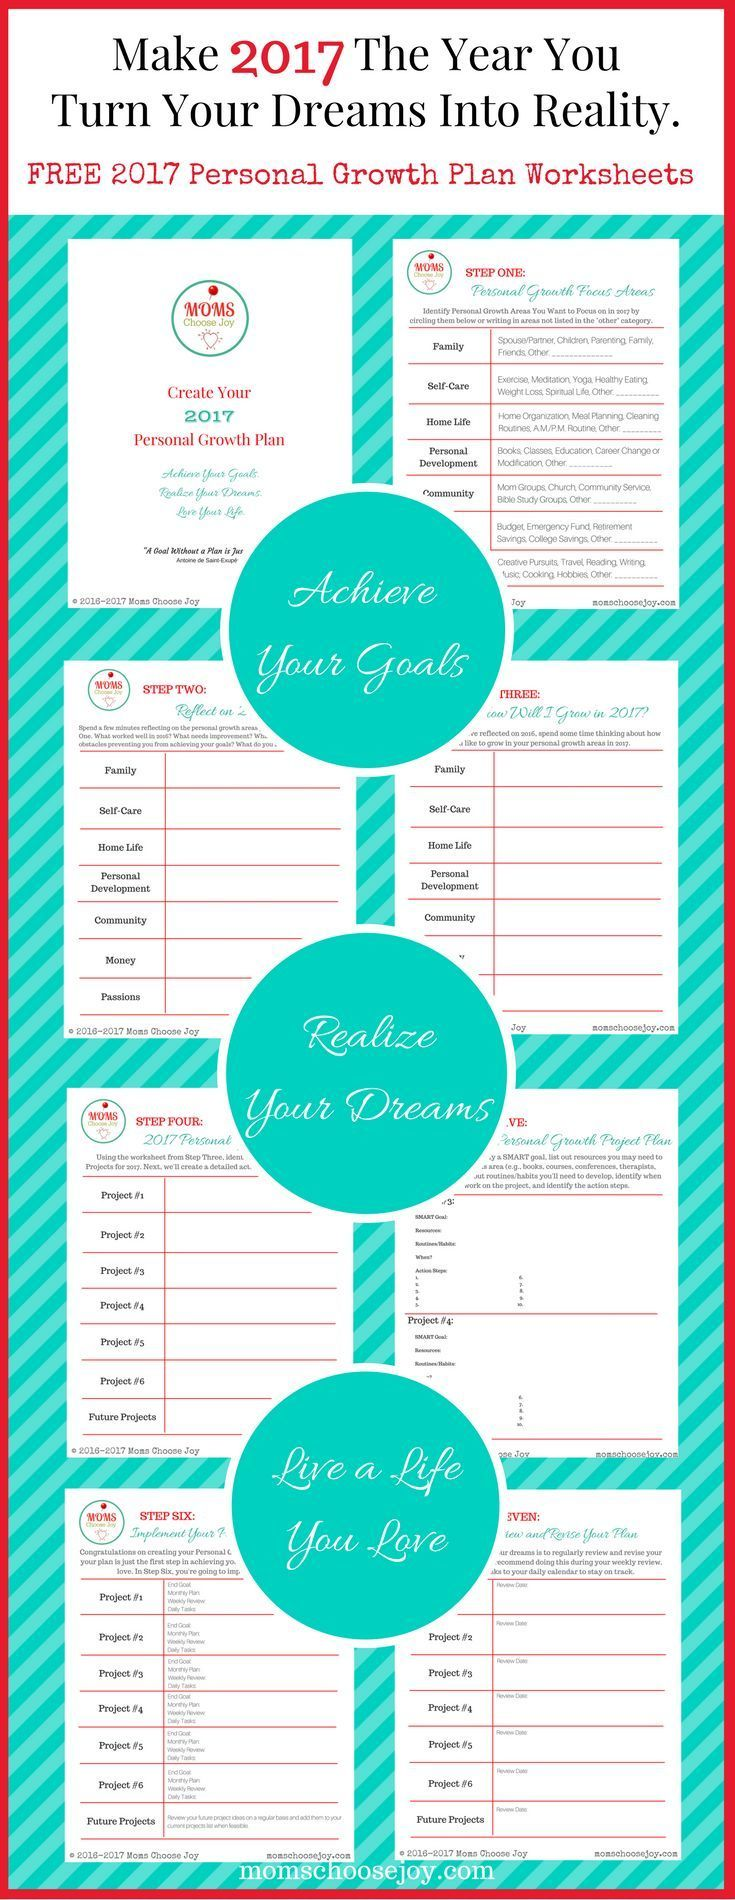 Are you ready for goal setting for 2017? This free 7-Step Personal Growth Plan Worksheet Printable is designed with busy moms in mind. Use the worksheets to create a plan to make 2017 the year you achieve your goals, turn your dreams into reality, and liv